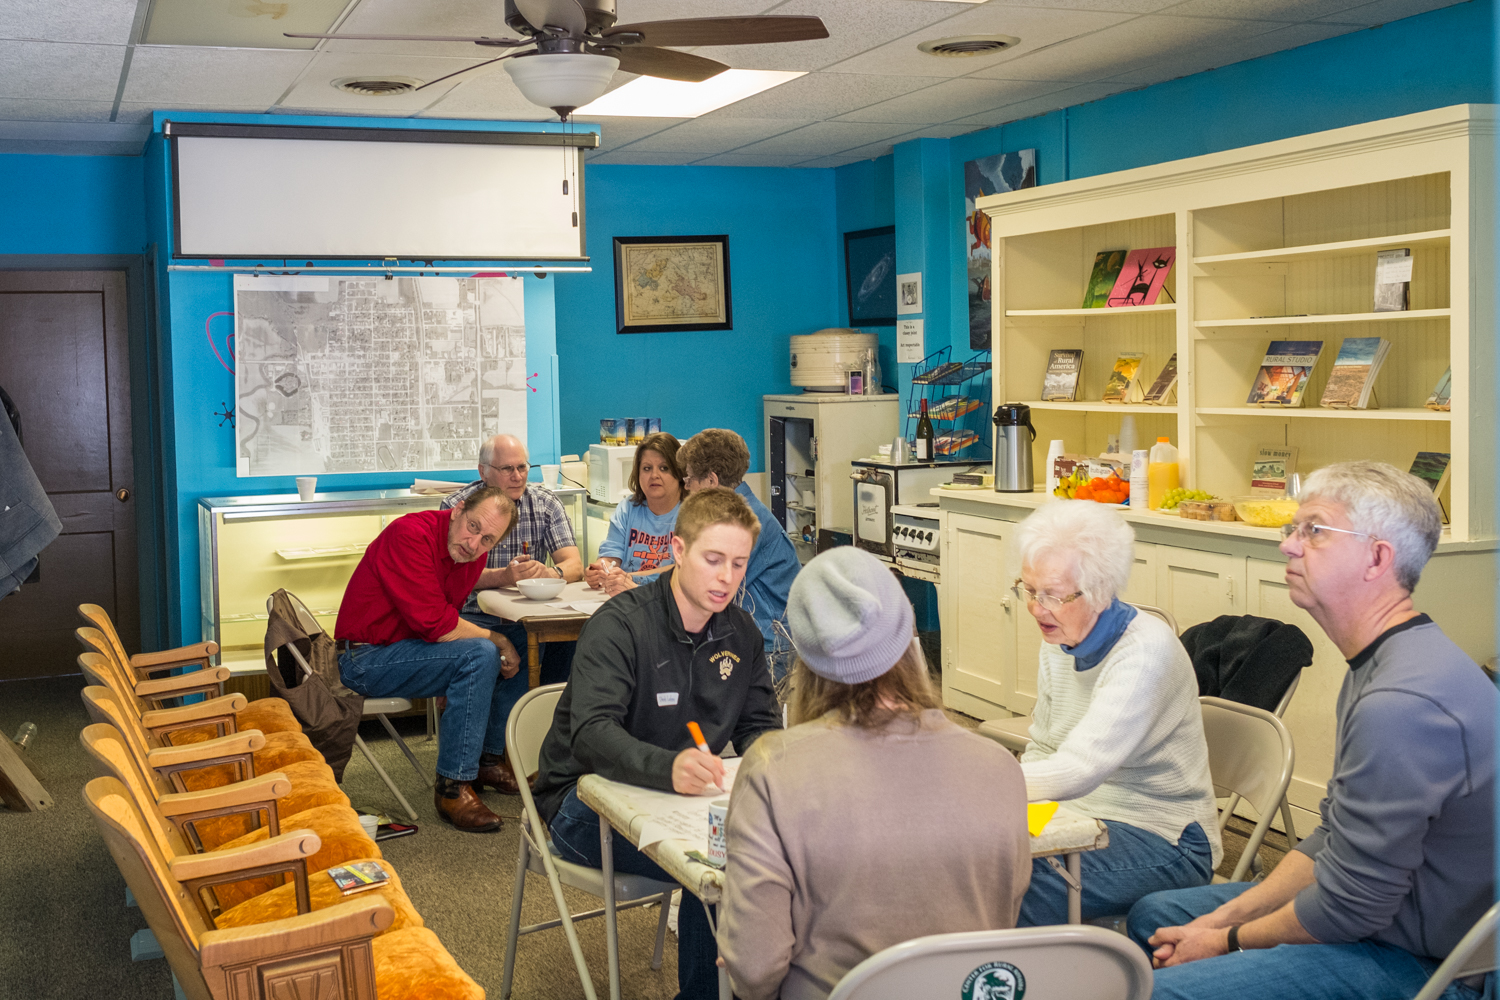 Lyons residents participate in a series of conversations around community leadership.